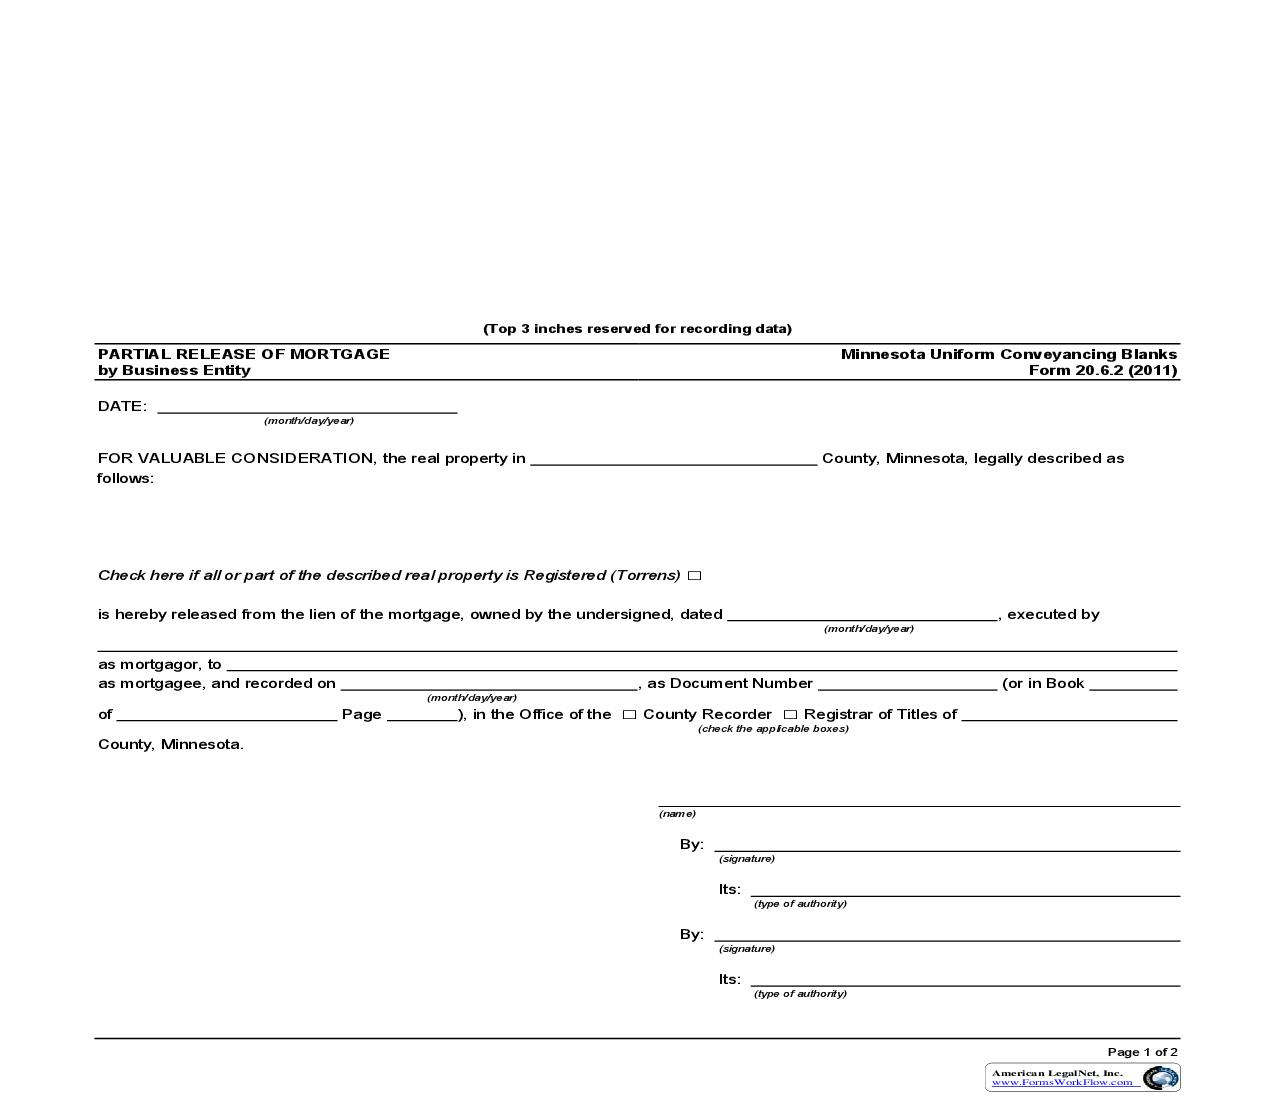 Partial Release Of Mortgage By Business Entity {20.6.2} | Pdf Fpdf Doc Docx | Minnesota